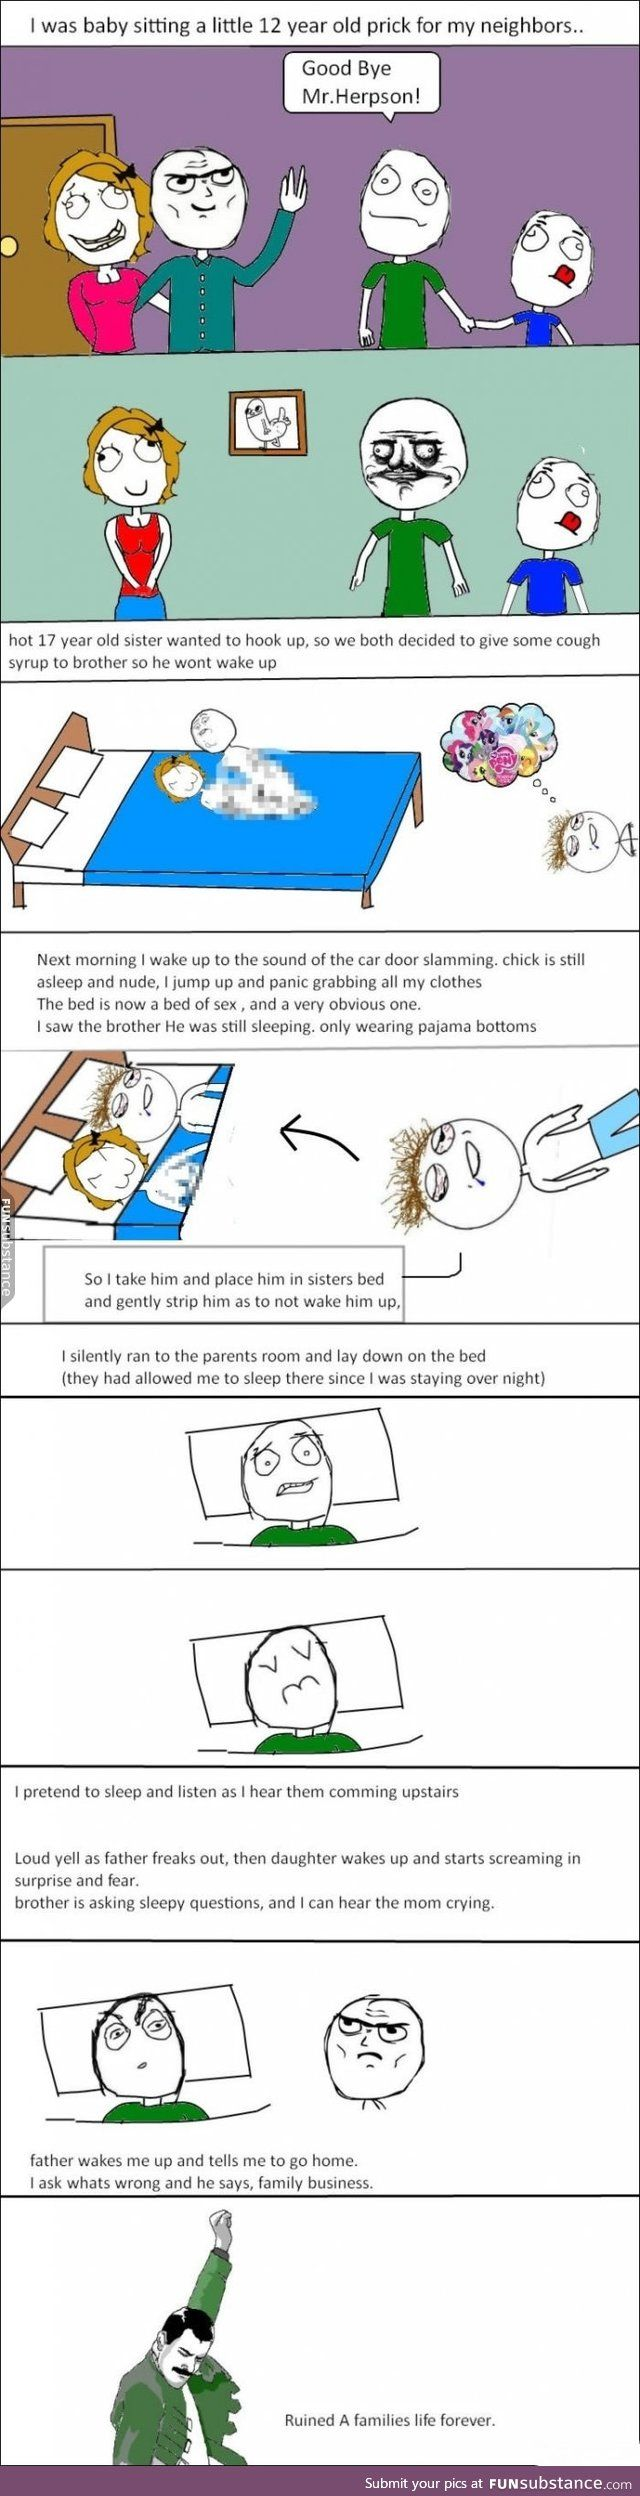 Favorite rage comic of all time